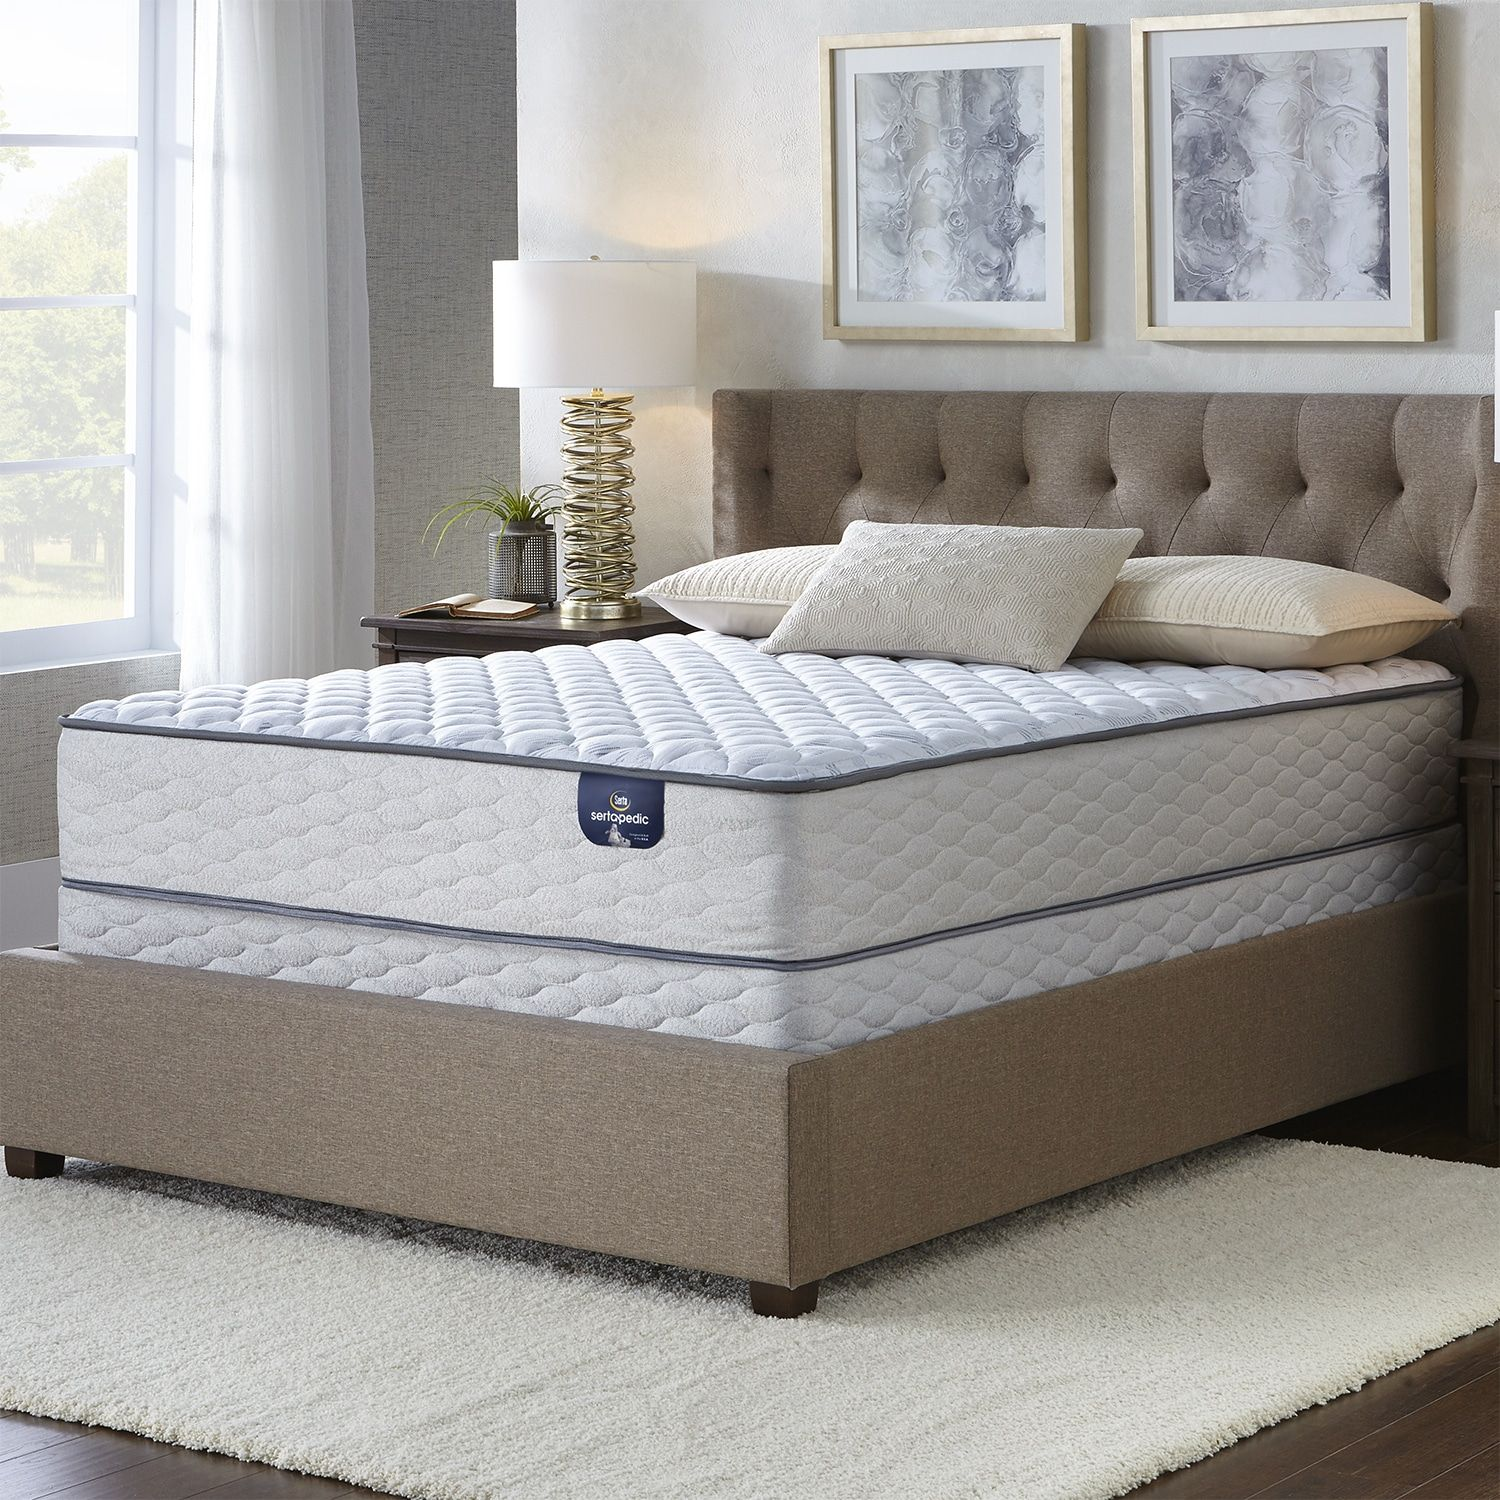 serta faircrest 10 5 inch firm twin xl size mattress twin xl